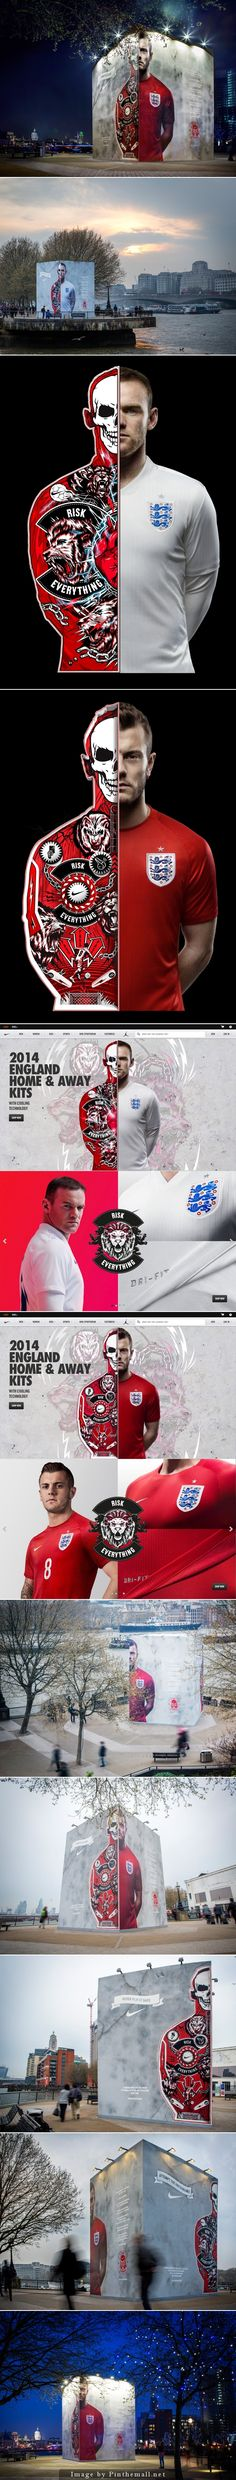 #branding #design #digital #integrated #nike #riskeverything